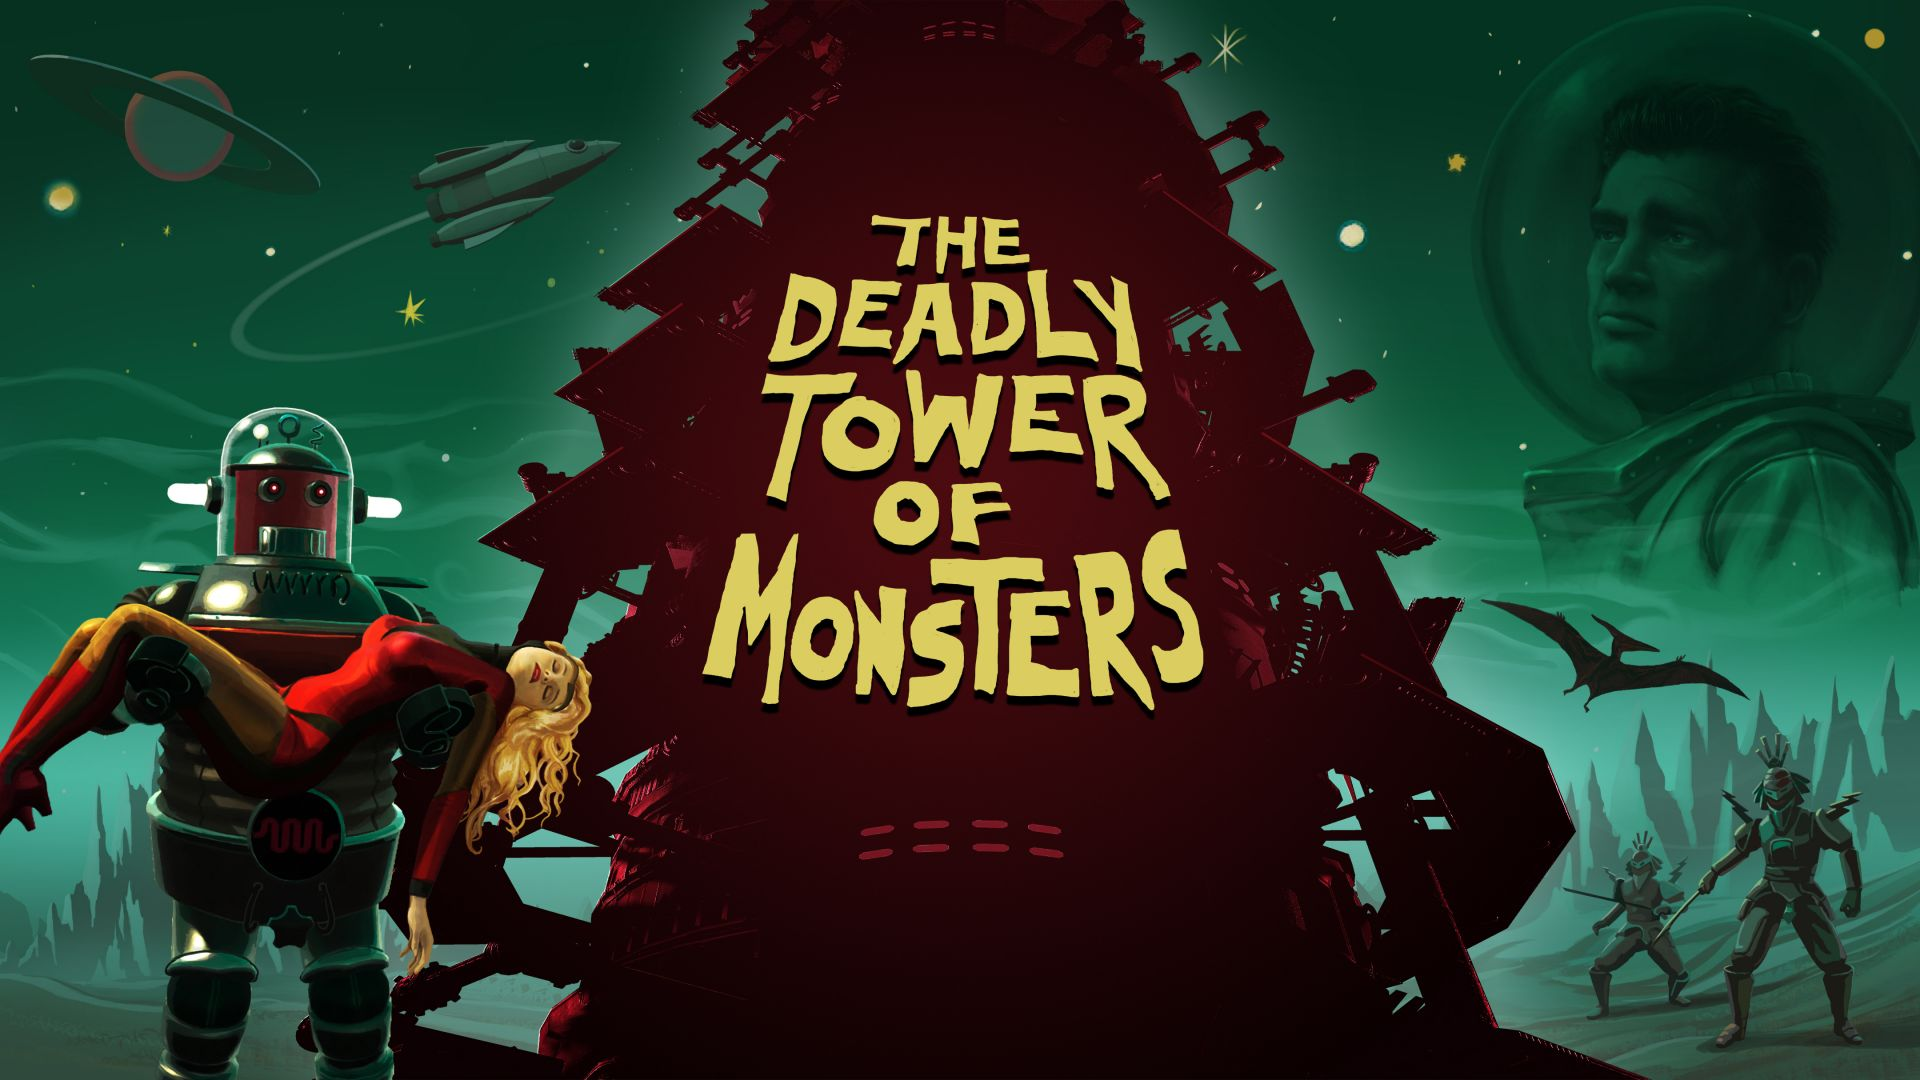 The Deadly Tower of Monsters, Лучшие игры 2015, игра, фантастика, ПК, PS4, The Deadly Tower of Monsters, Best Games 2015, game, sci-fi, PC, PS4 (horizontal)